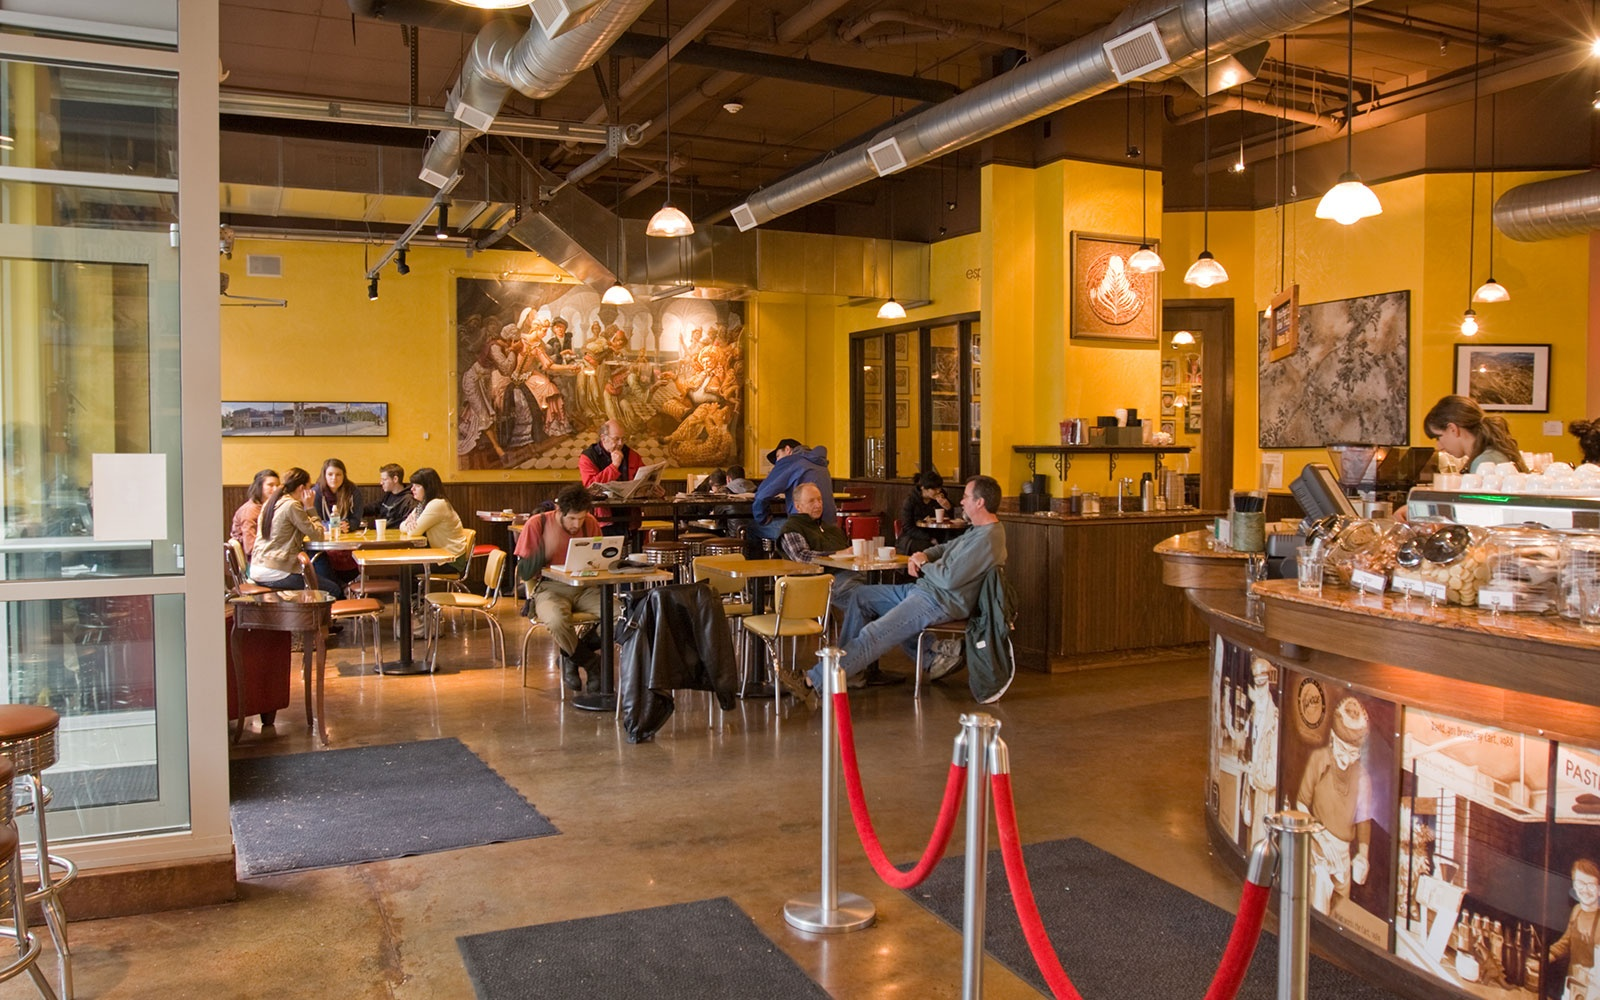 Best for an Extra-Strong Cup: Espresso Vivace's Capitol Hill Location